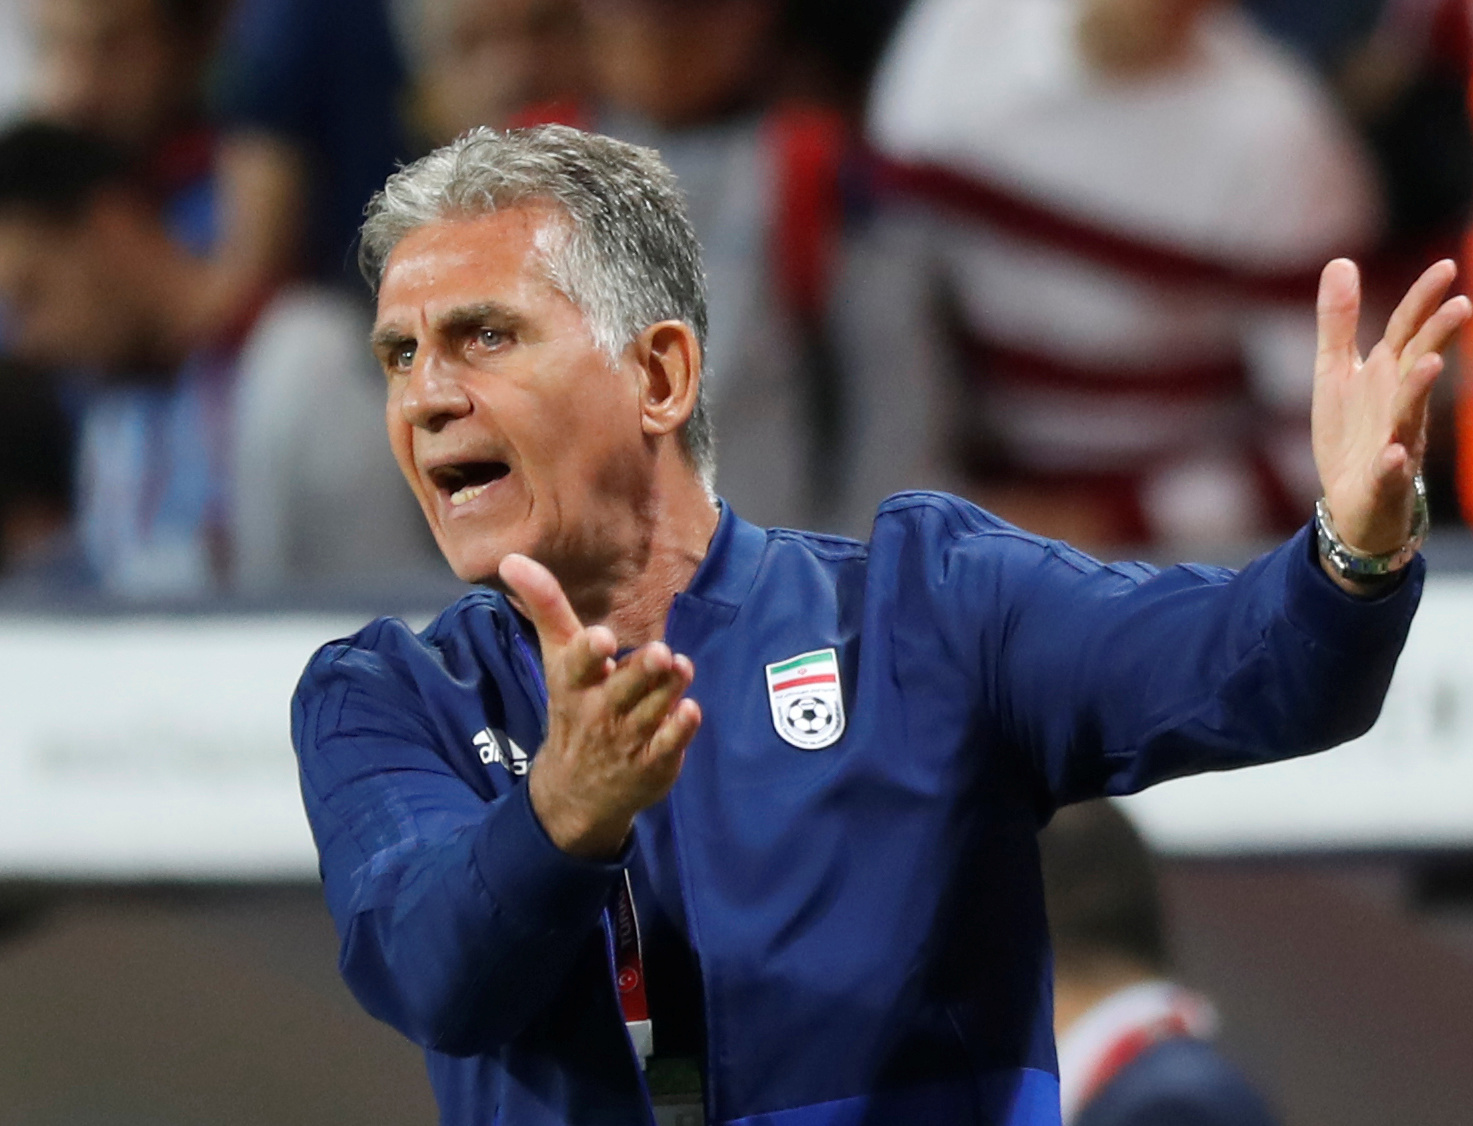 Beware of sharks: Queiroz wary as Iran storm into Asian Cup semis